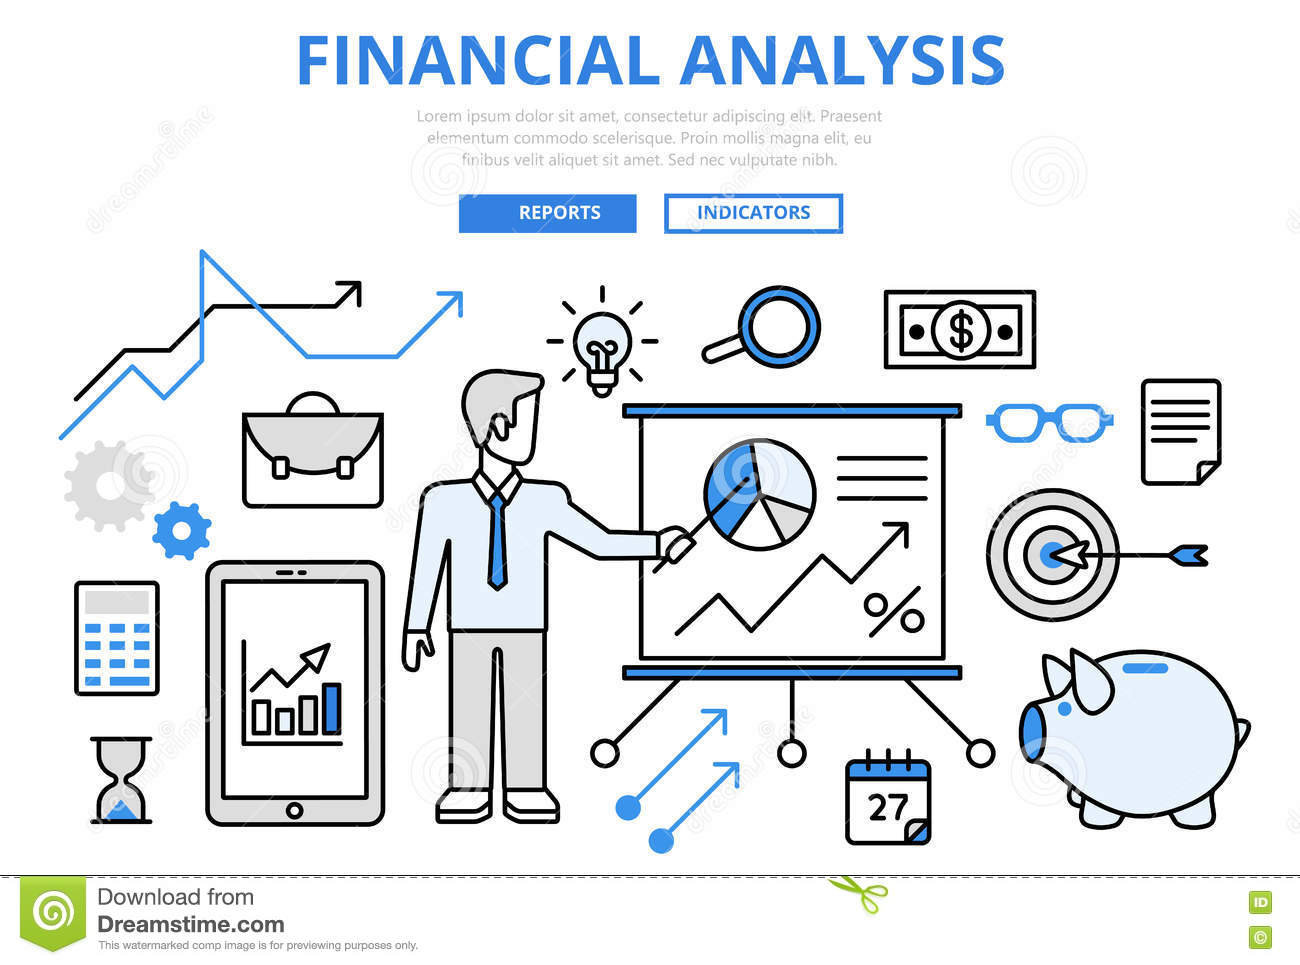 Financial Oversight and Analysis